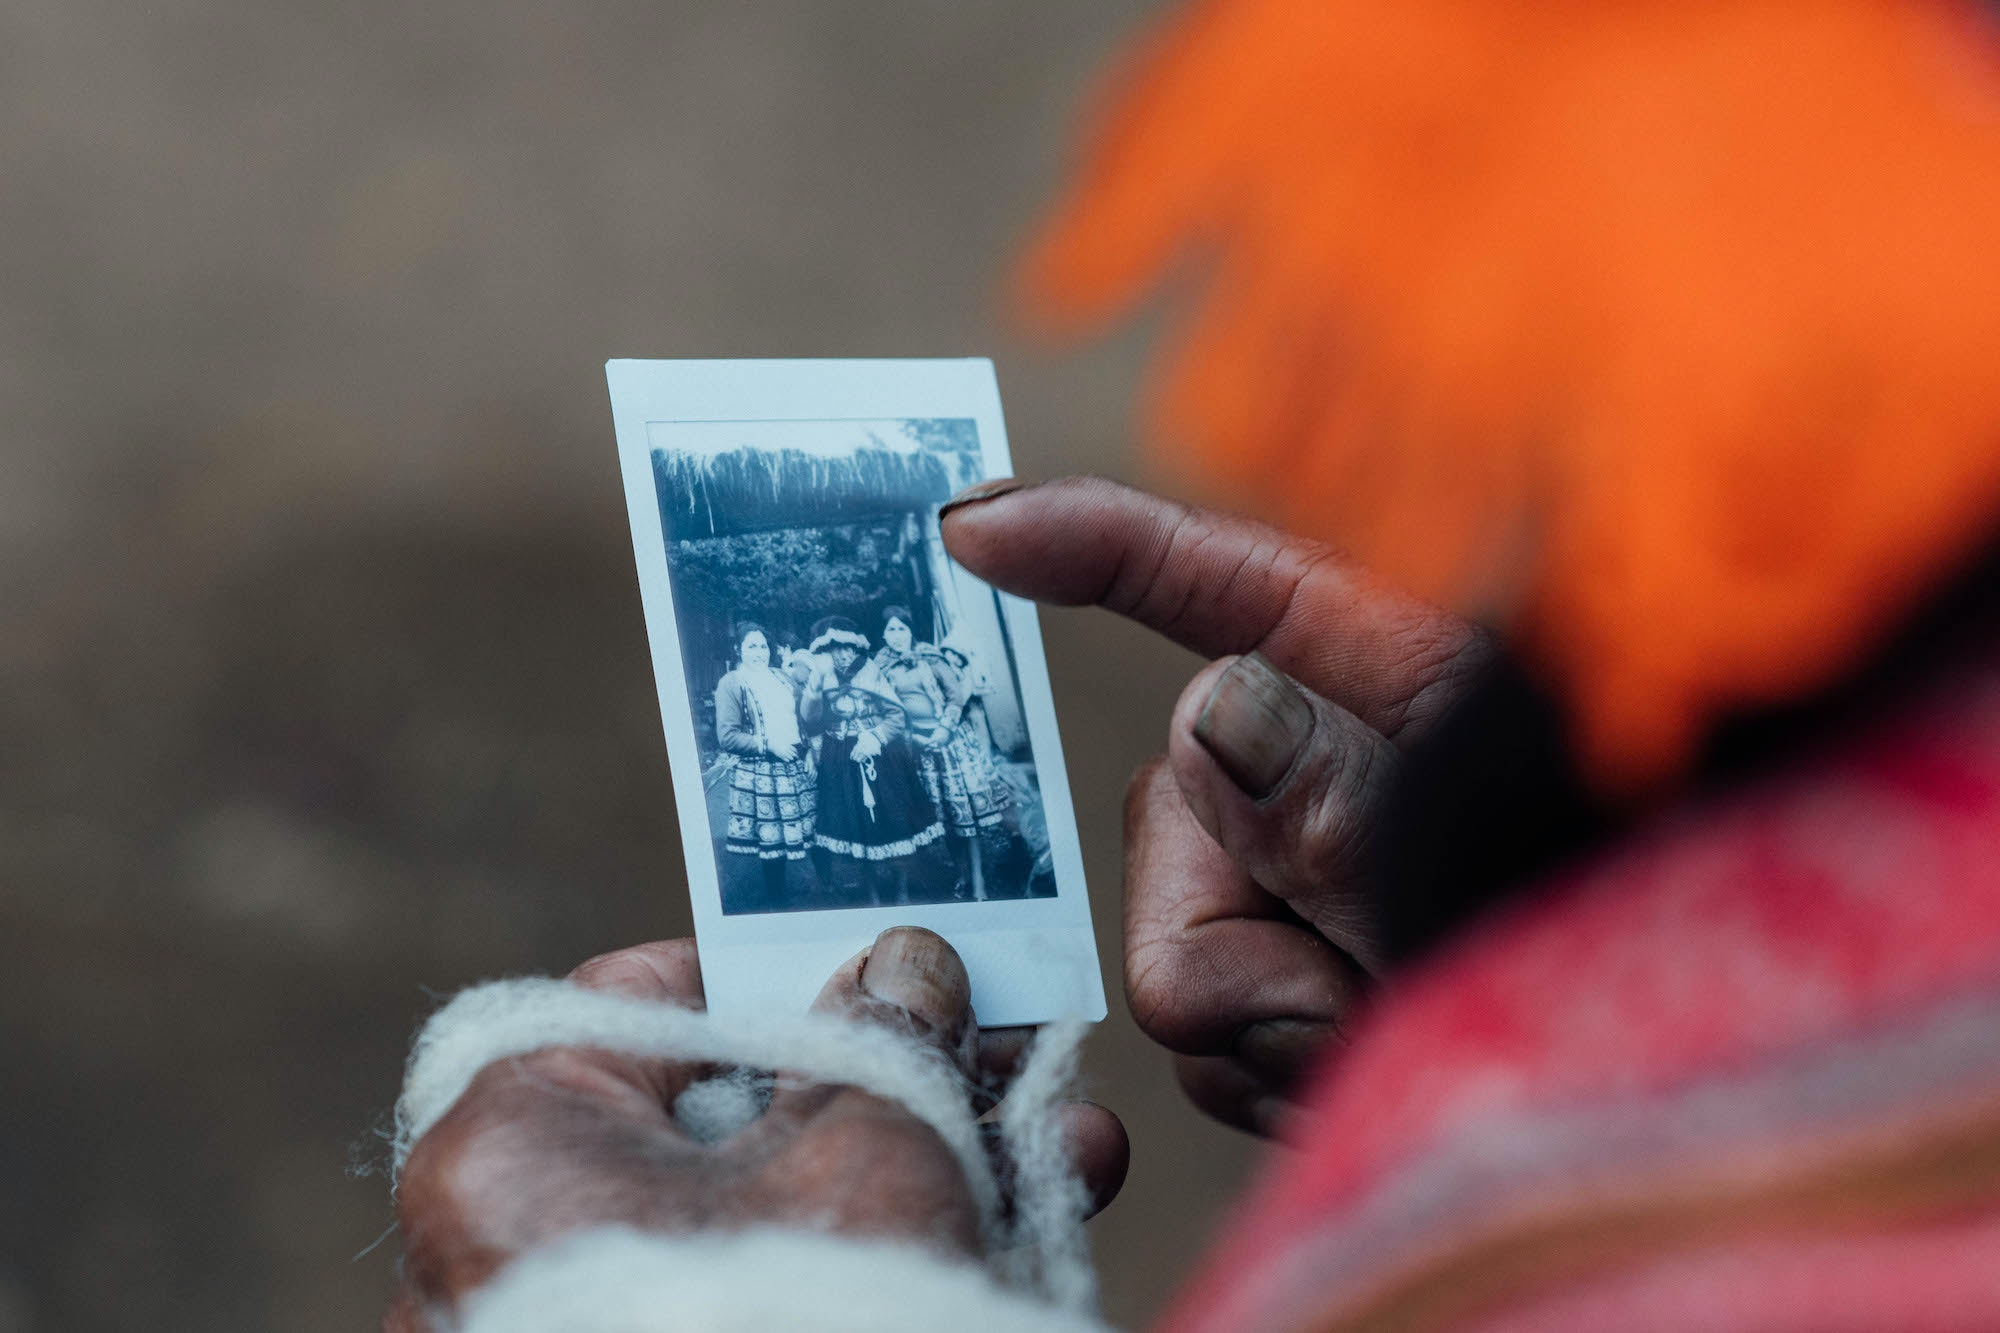 In Peru's Sacred Valley, Laucht photographed indigenous Amaru women and gave them Polaroid portraits in exchange.